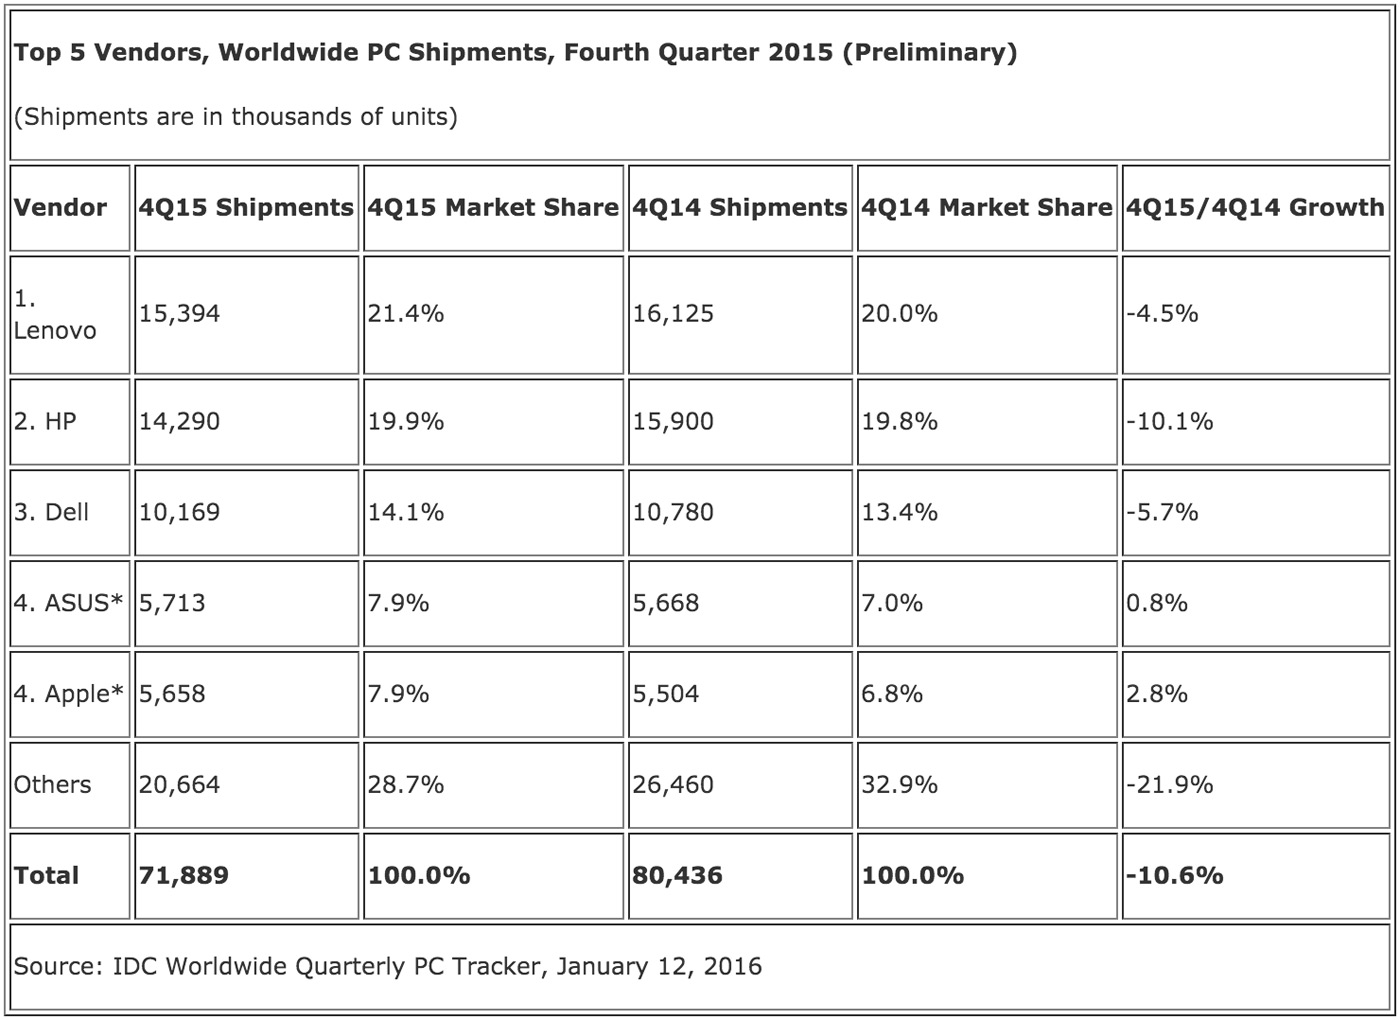 IDC's worldwide PC shipment estimate for Q4 2015